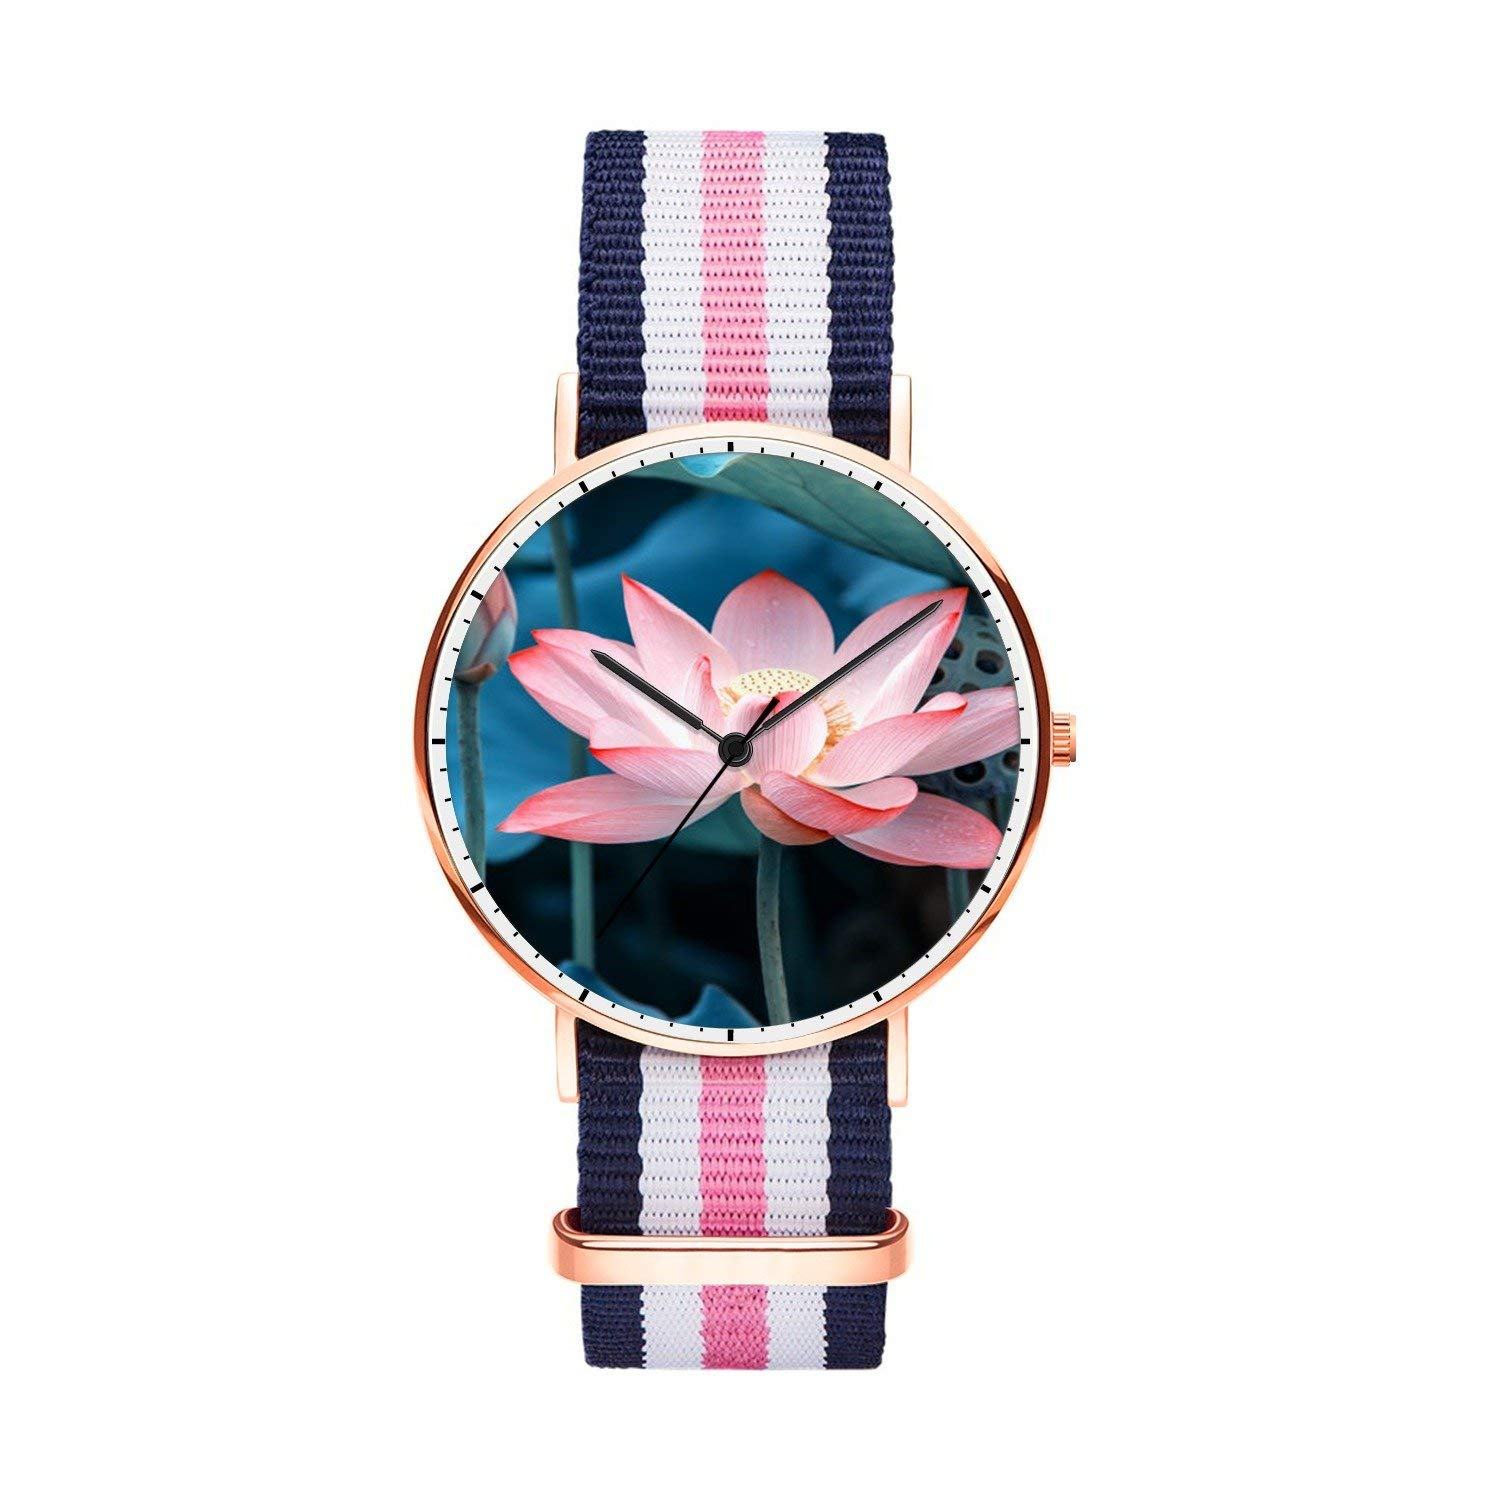 FELOOWSE Youth Men's Watches, Boys Watch Unique Rose Gold Imported Japanese Quartz Unisex Wrist Watch, PracticalWaterproof and Youth Fashion Personalized Design for Man,Boyfriend and Family.- Lotus